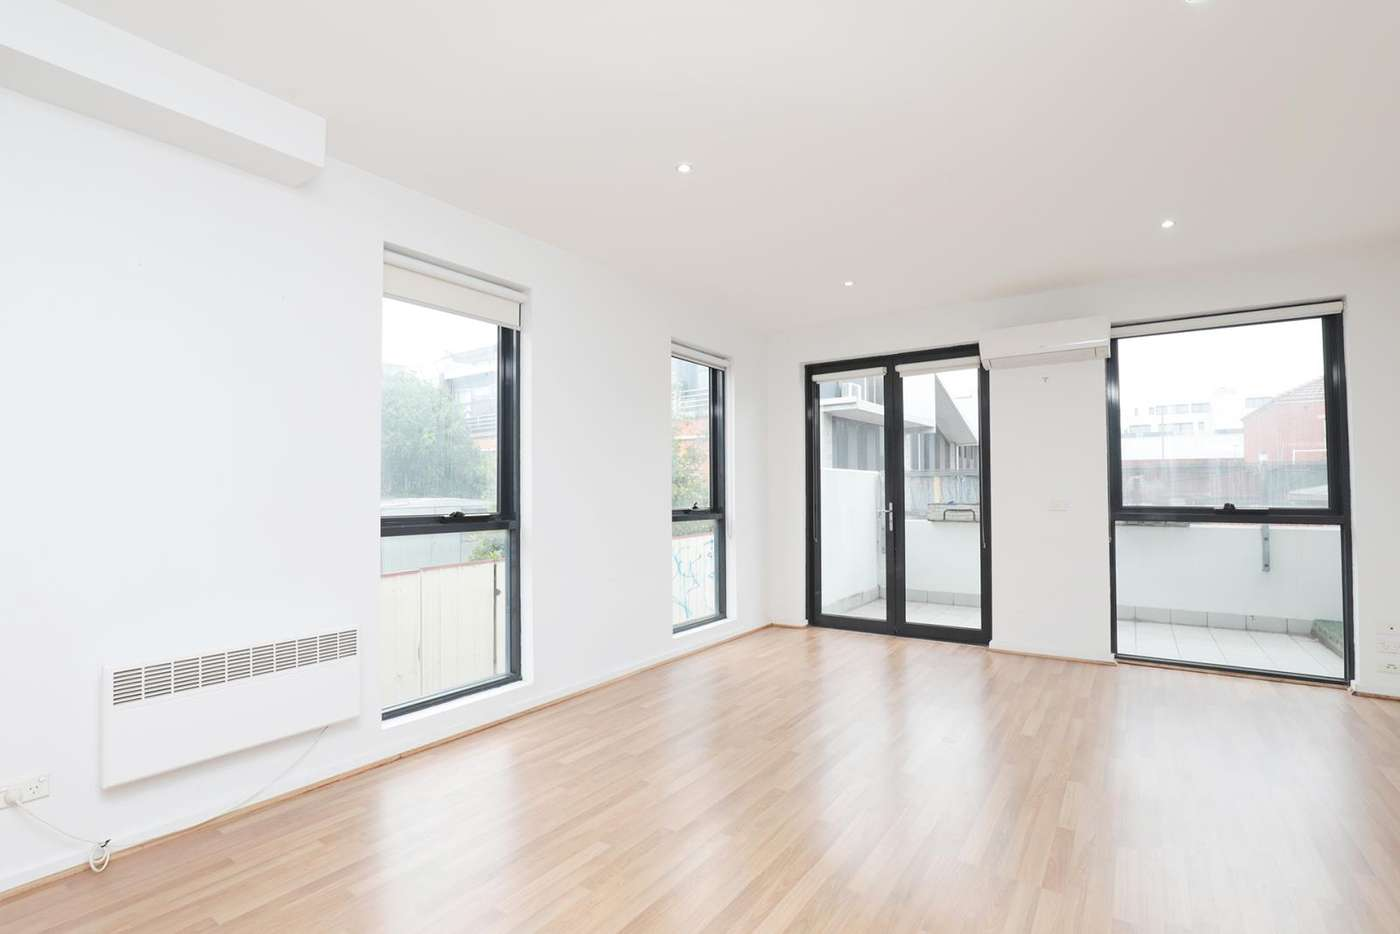 Sixth view of Homely unit listing, 7/395 Lygon Street, Brunswick East VIC 3057